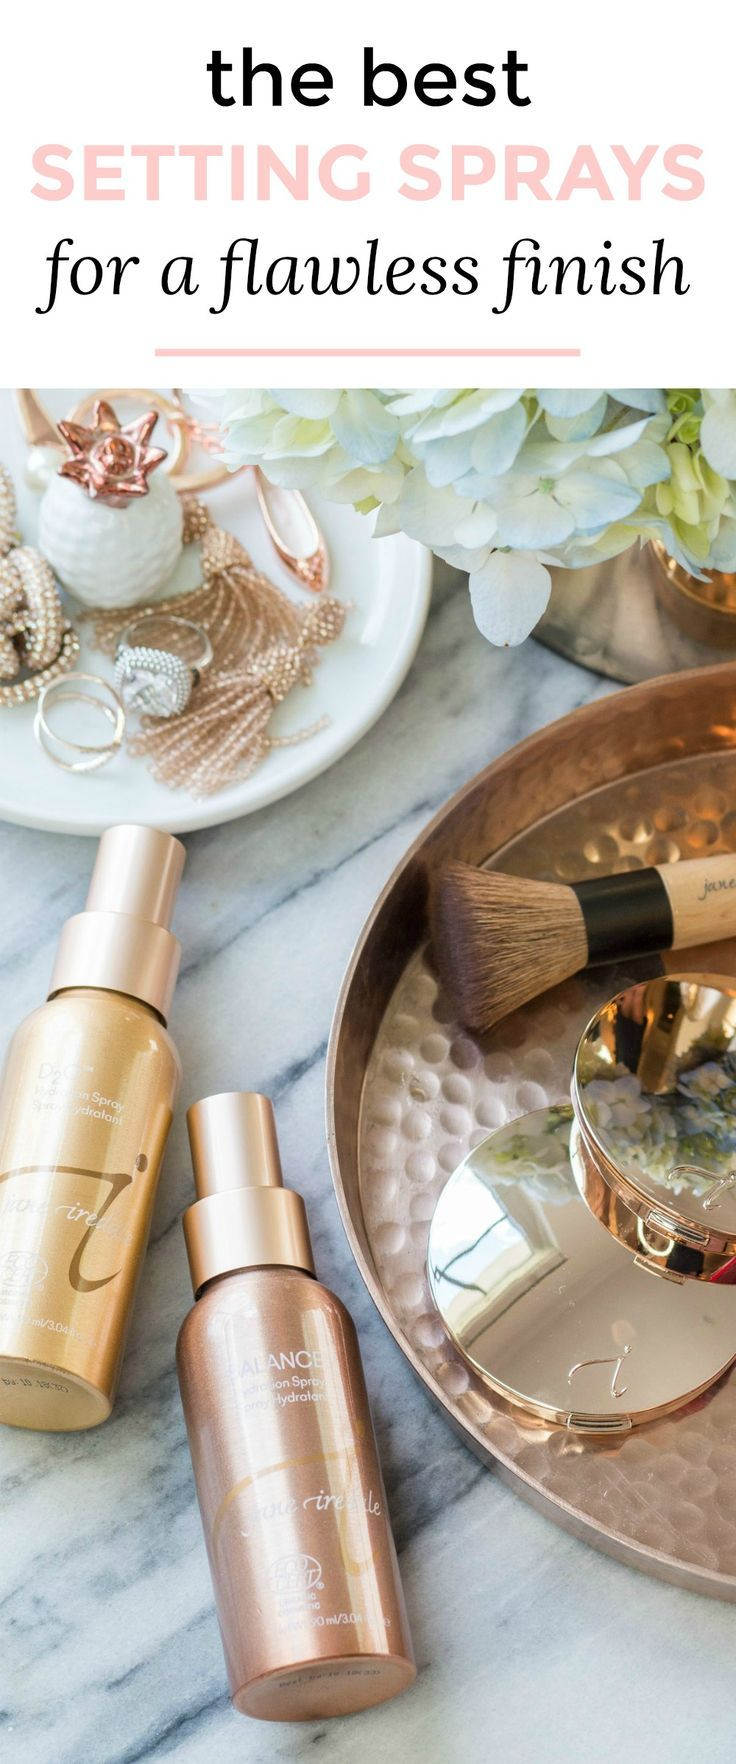 Learn how to make your skin look flawless with this easy full coverage foundation routine for all skin types with the best setting sprays for creating a flawless finish - jane iredale's PurePressed Base®️️ Mineral Foundation and POMMISST™️ Hydration Spray. Click to see the makeup tutorial by Orlando beauty blogger Ashley Brooke Nicholas. #TheSkincareMakeup #BeautyWithBrilliance sponsored by jane iredale | easy makeup tutorial, foundation routine, foundation tutorial, best makeup, bes